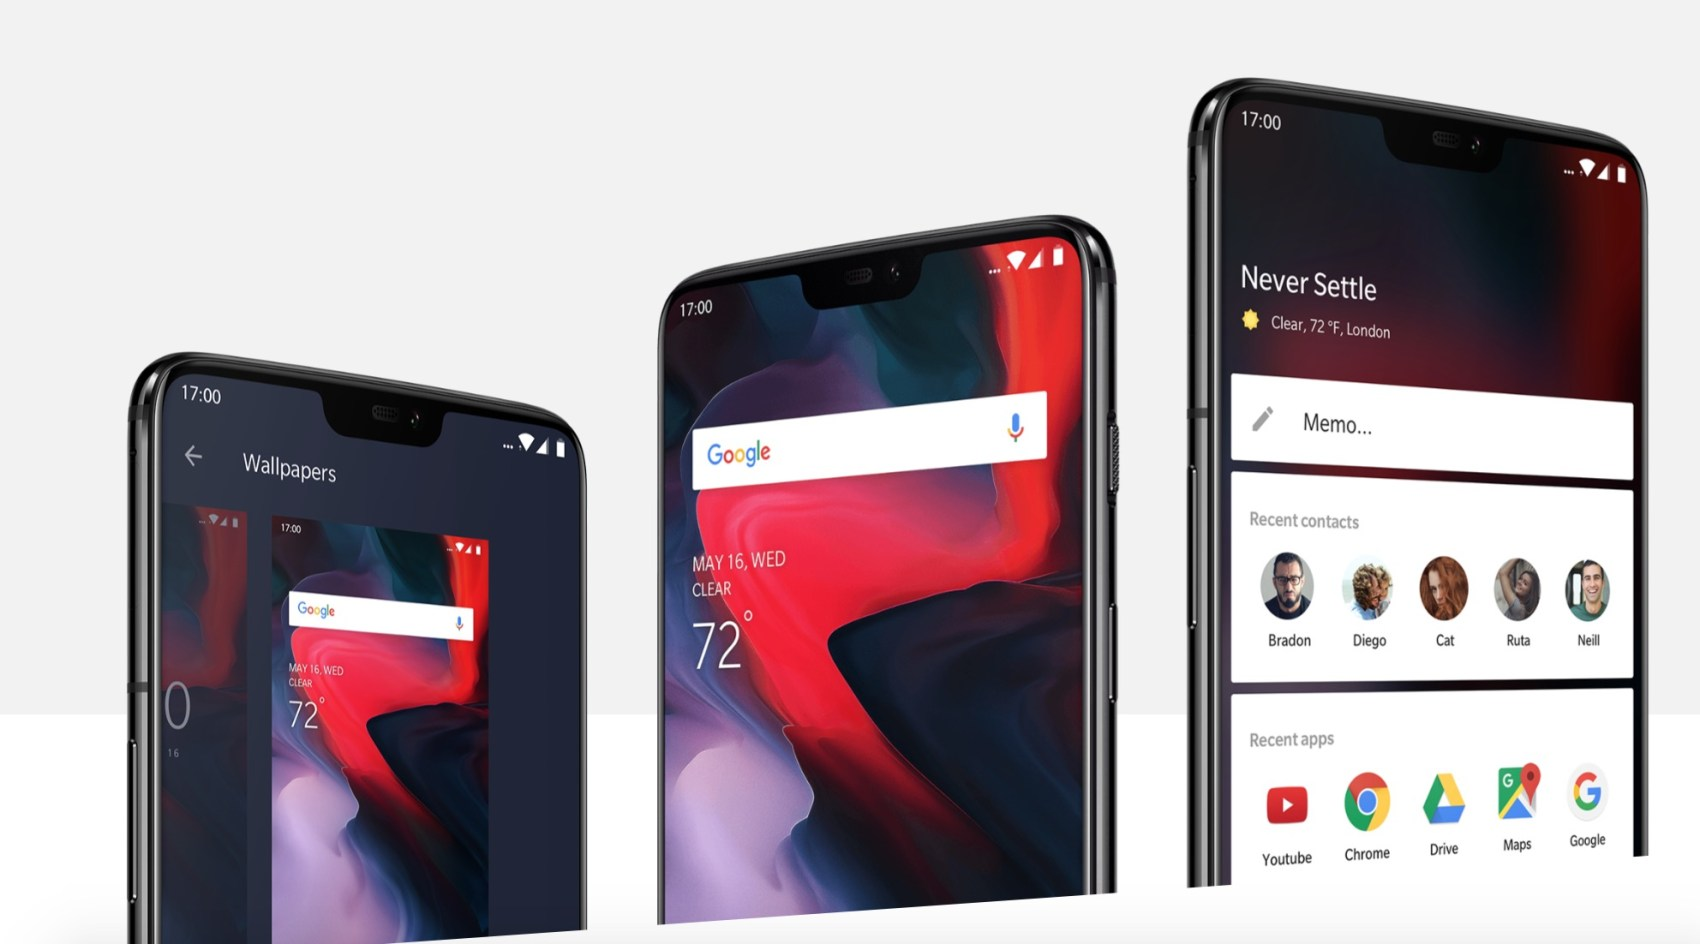 OnePlus 3 and 3T to (eventually) receive Android P update